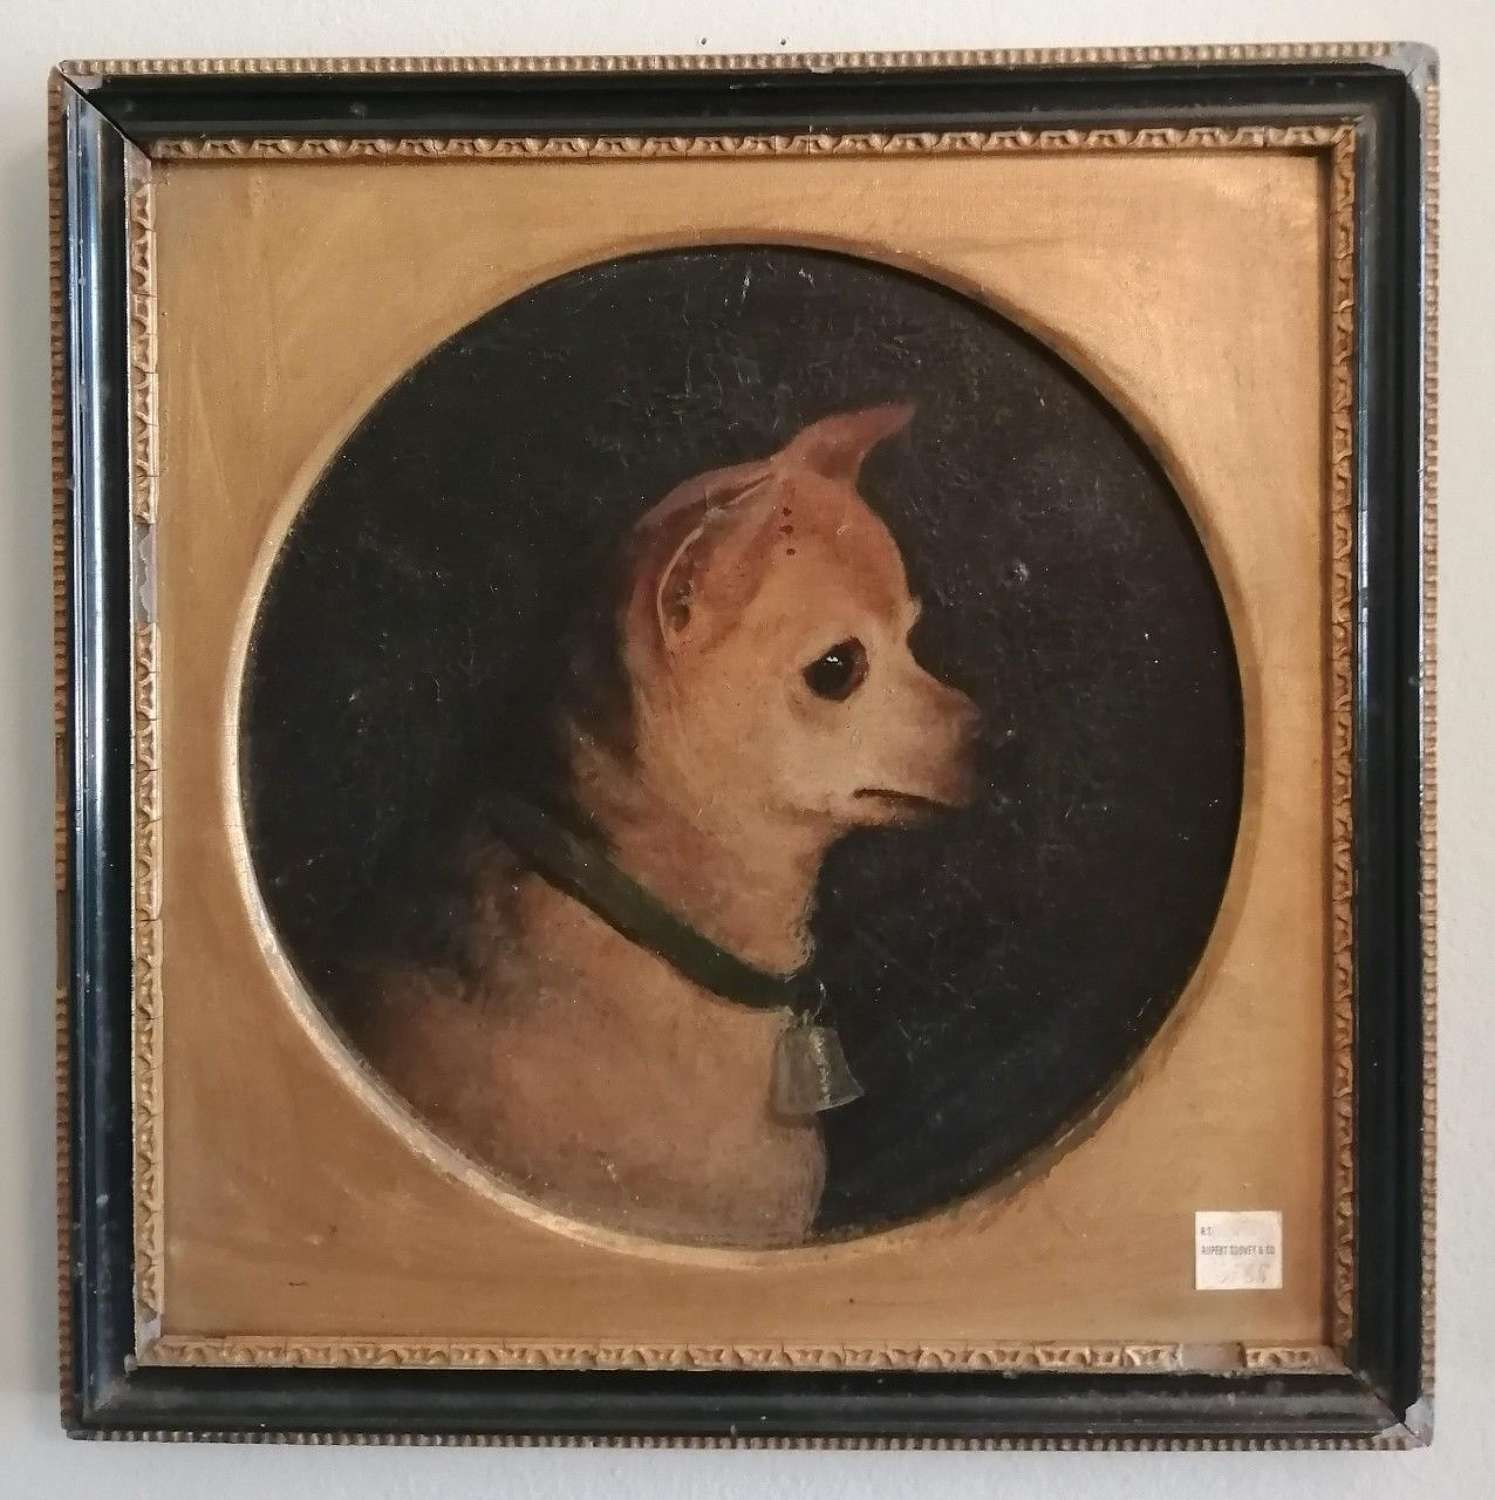 CHIHUAHUA (ENGLISH, 19TH CENTURY)